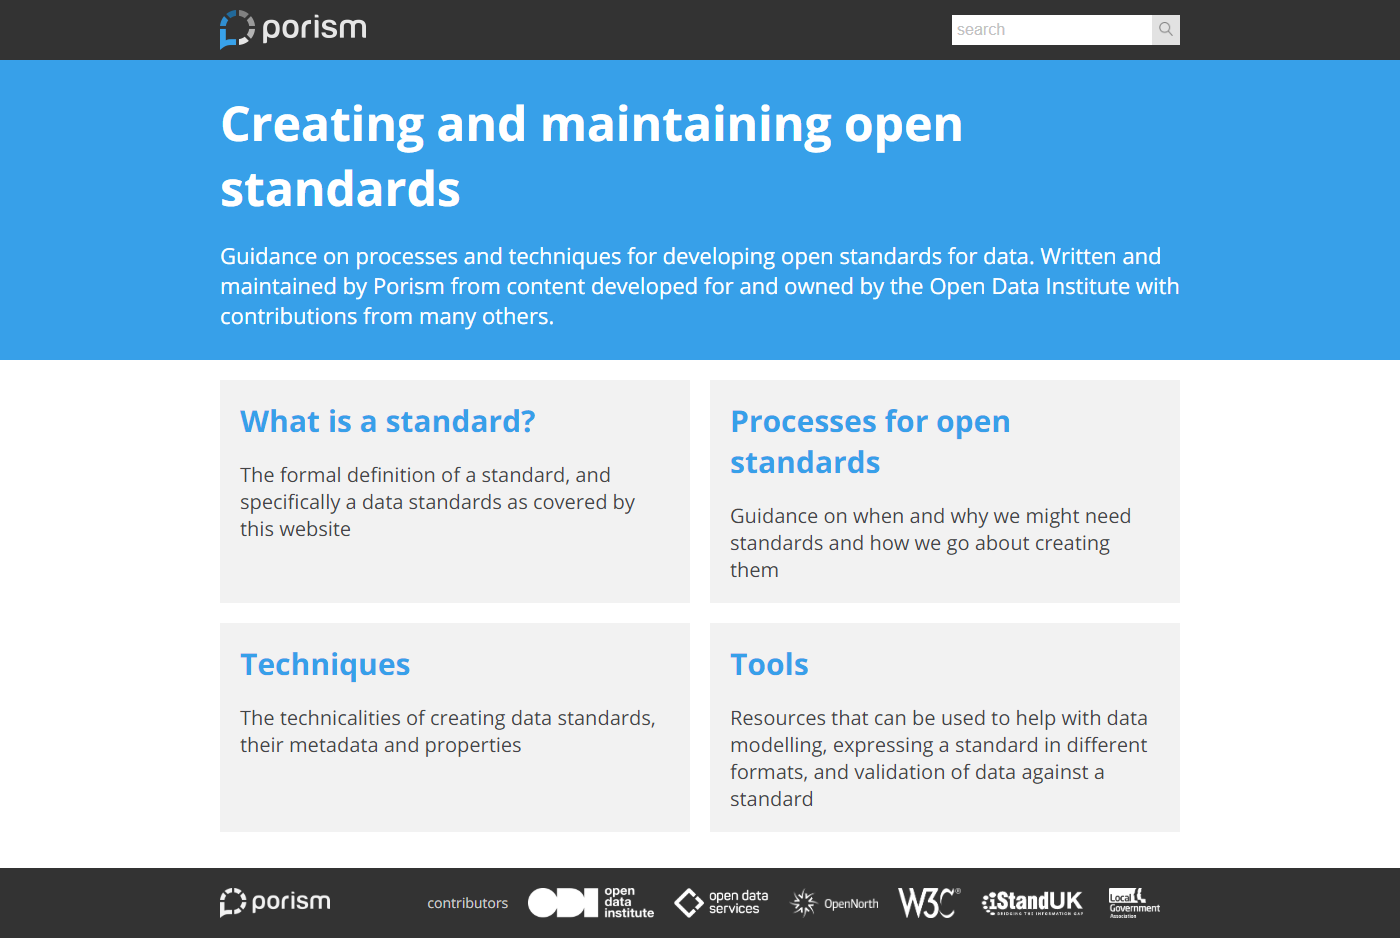 the Creating and maintaining open standards